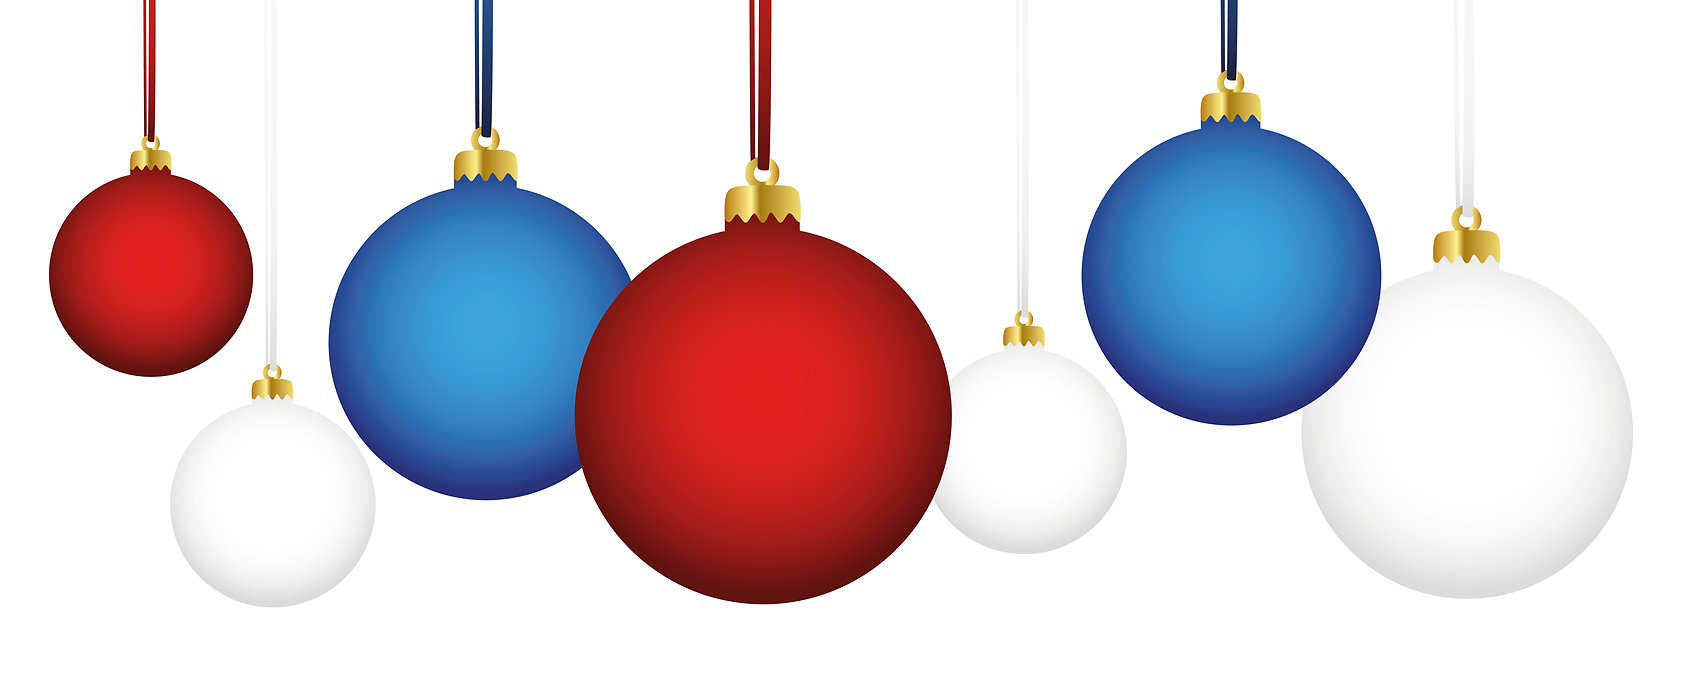 094729754-merry-christmas-bauble-blue-wh